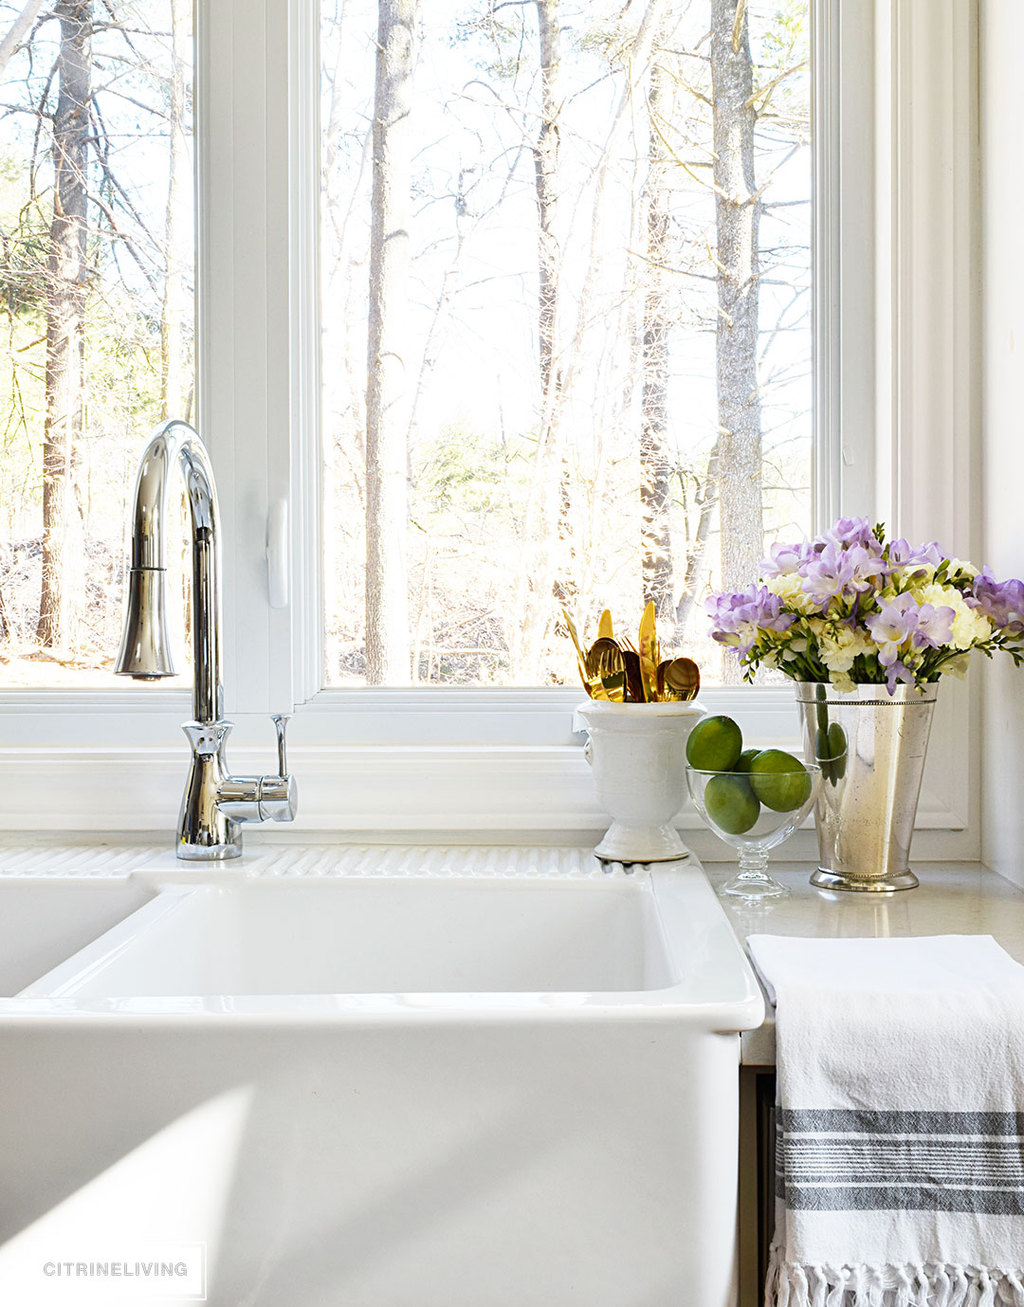 Beautiful Spring flowers - hydrangeas and freesias - paired with fresh limes, creates a vibrant vignette on the in your kitchen.